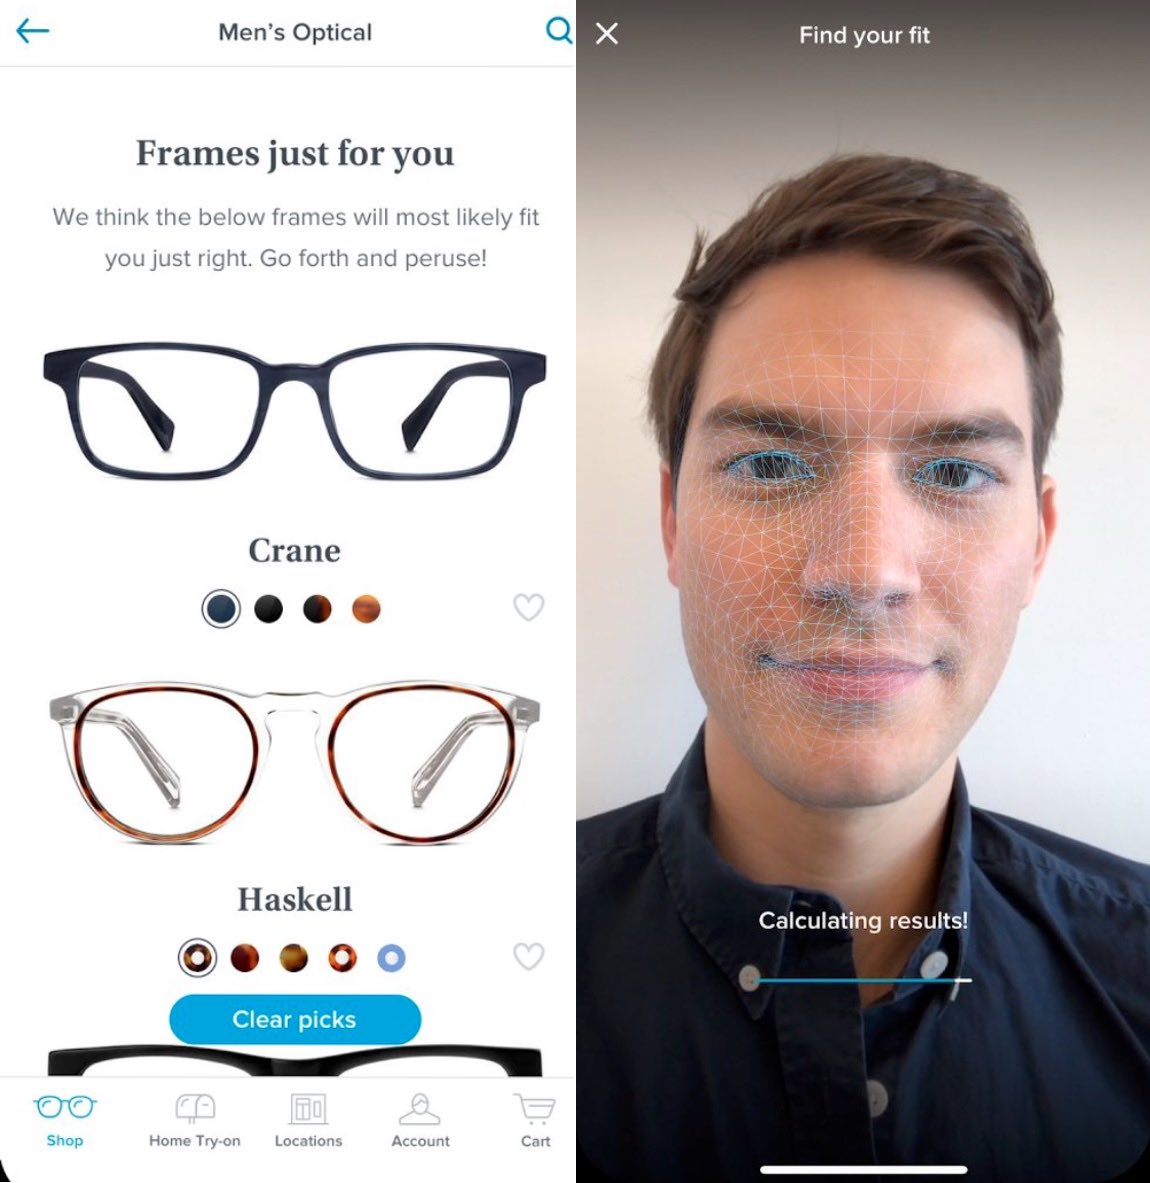 7cb5f1b10e87 Warby Parker App Uses iPhone X TrueDepth Camera to Find Your Ideal Specs -  MacRumors